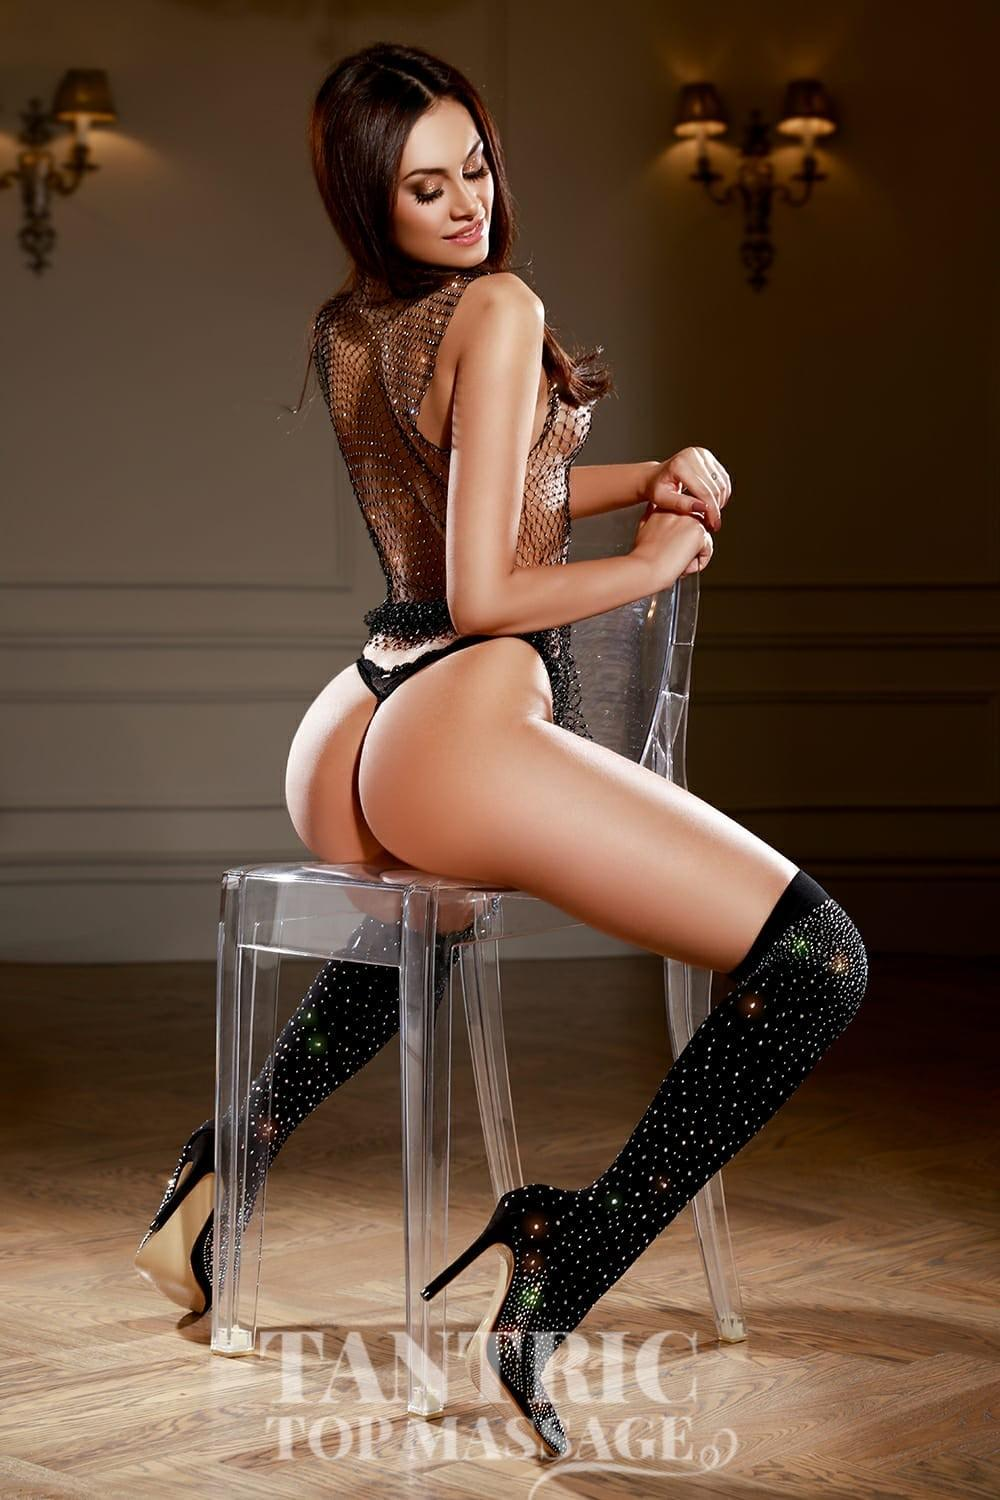 Maria from Tantric Top Massage